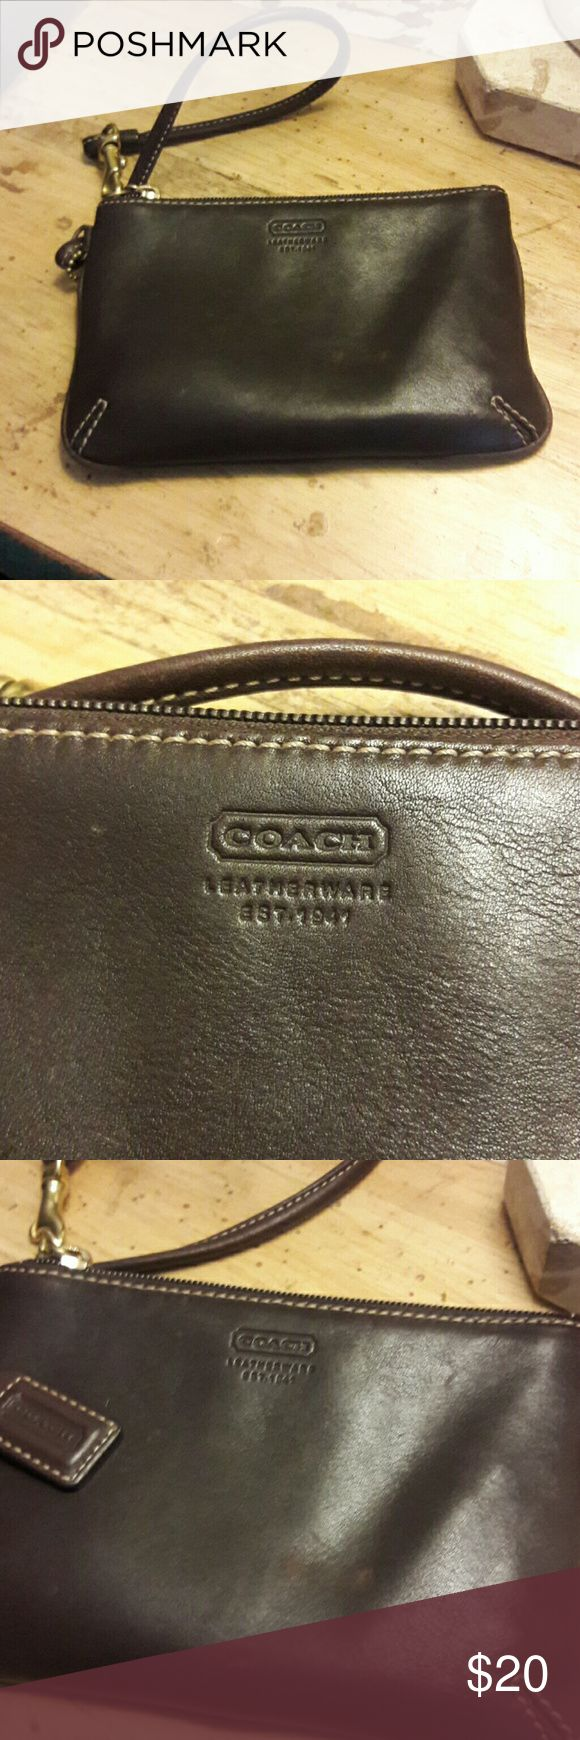 Coach chocolate brown wristlet new w/o tags Very luscious shade of brown wristlet.  Never used, but had small scruff mark on front even though new. Not too noticeable because of leather.  Have marked price down.  Please see picture 4. Coach Bags Clutches & Wristlets